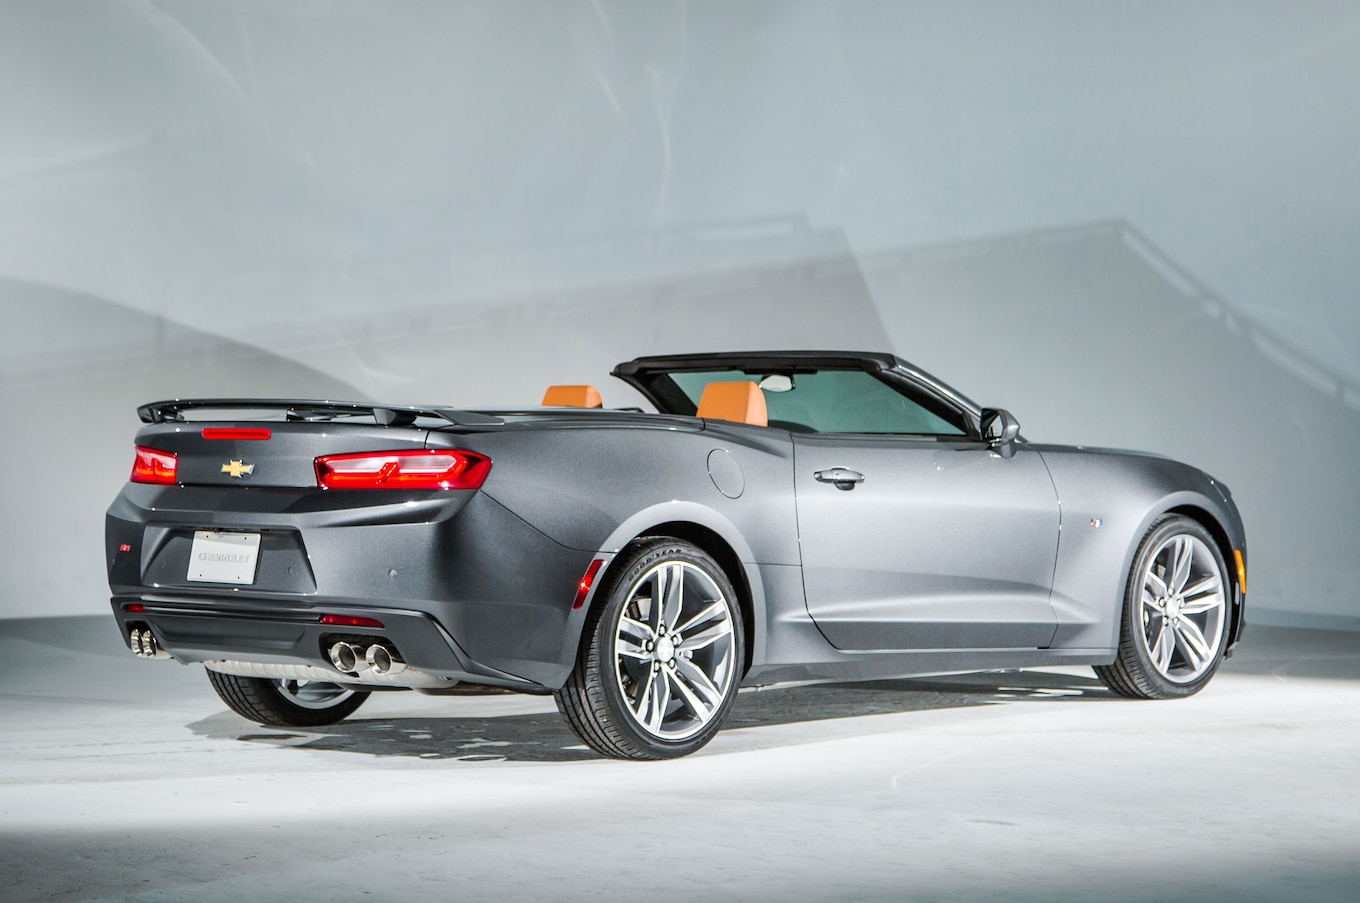 2016 Chevrolet Camaro Convertible First Look Review ...